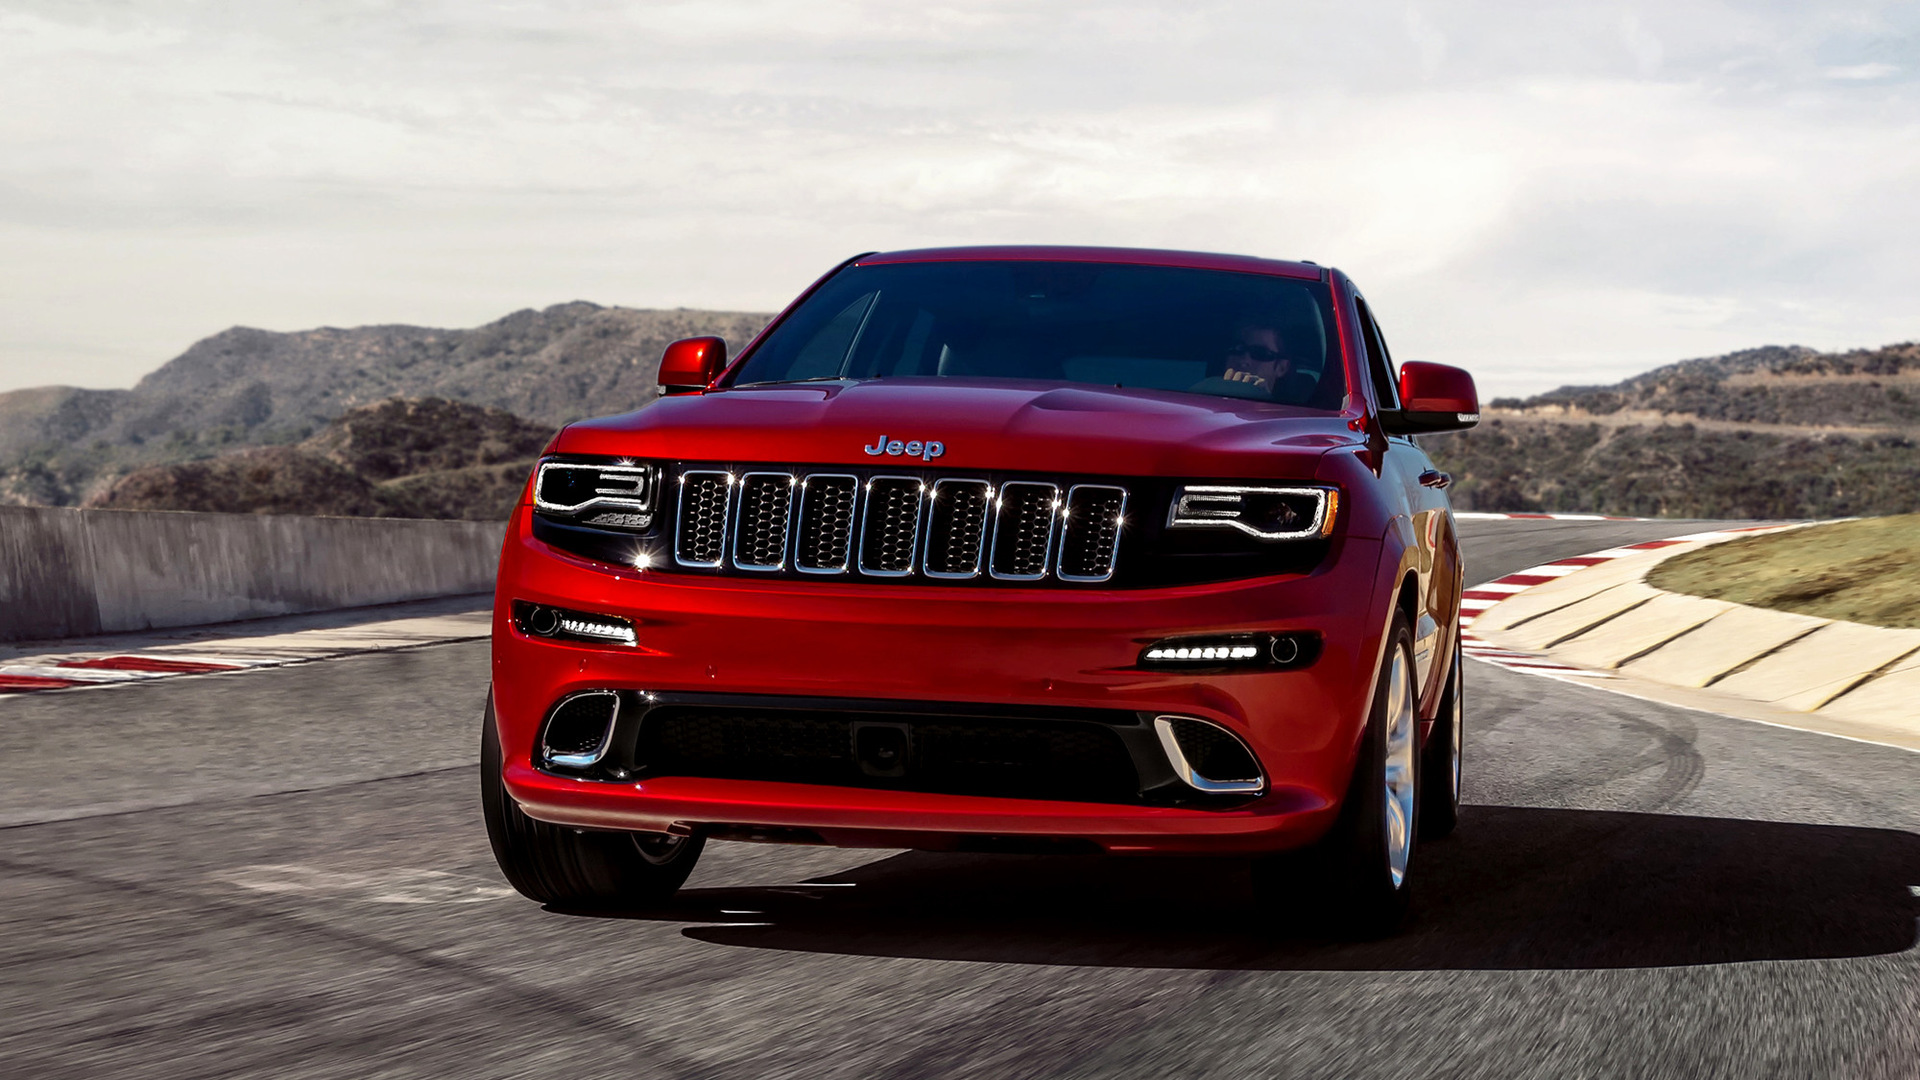 Jeep Grand Cherokee Trackhawk >> 2013 Jeep Grand Cherokee SRT - Wallpapers and HD Images ...